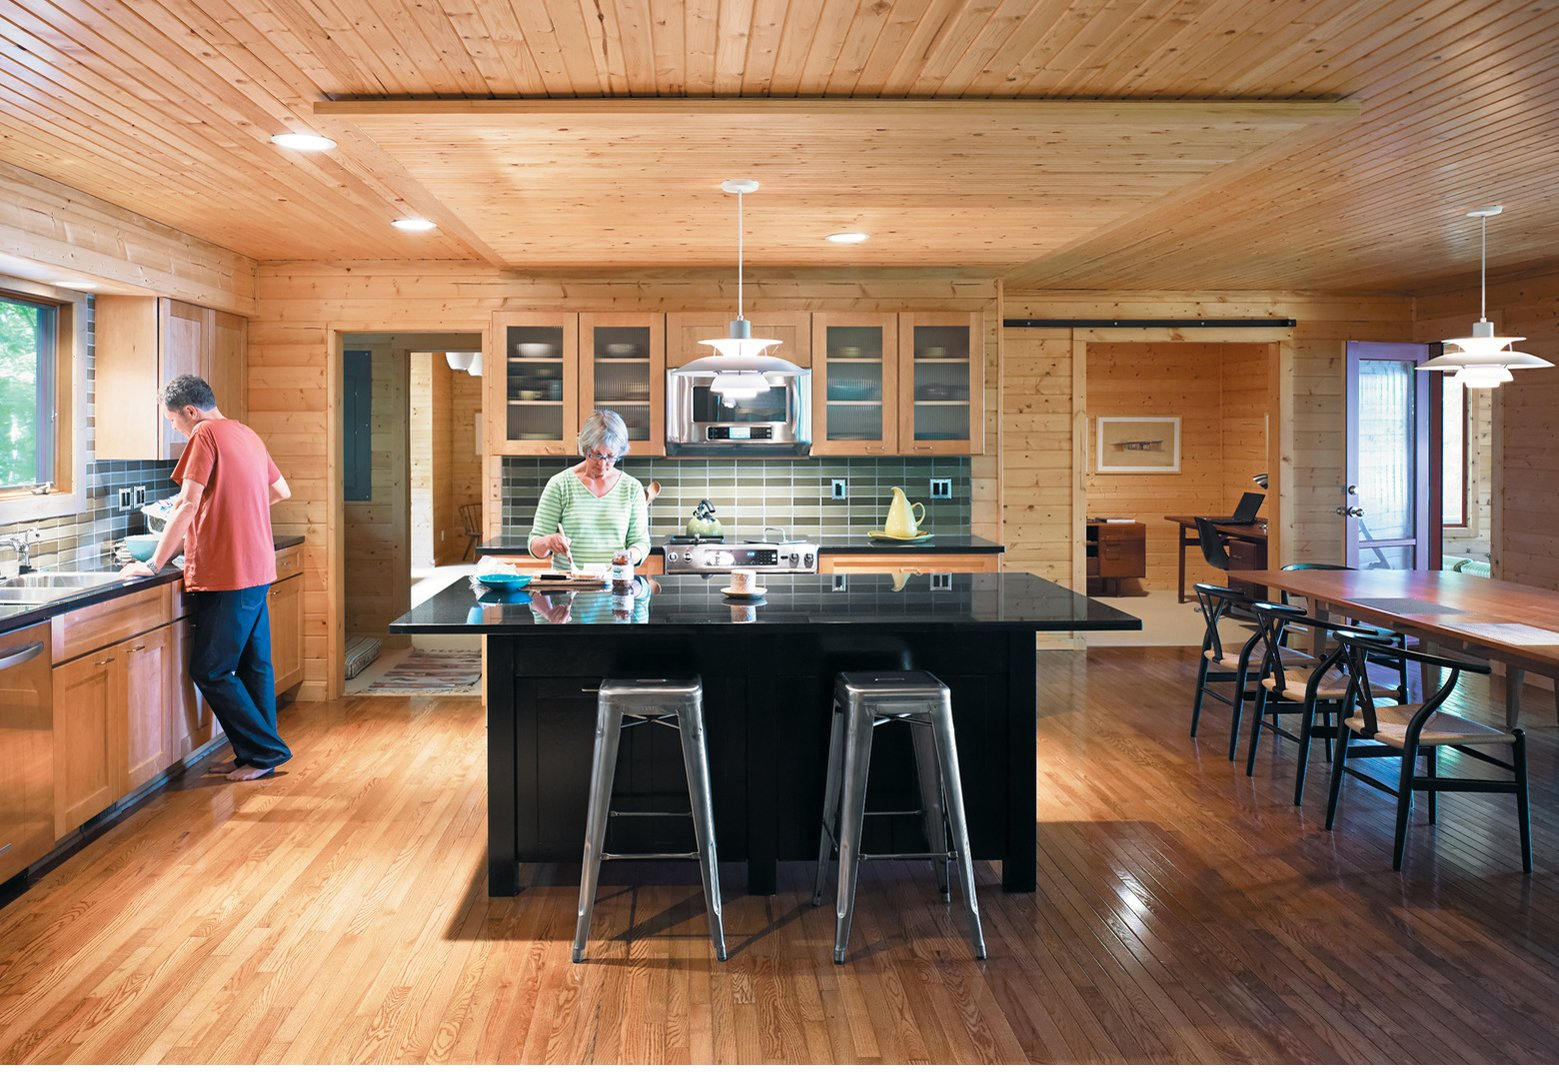 A Ranch House Kitchen RenovationFor their   lakeside retreat in northwestern Michigan, Keith and Mary Campbell renovated a 1970s ranch house to include a spacious kitchen-dining room.  Kitchen by Jamel from A Ranch House Kitchen Renovation